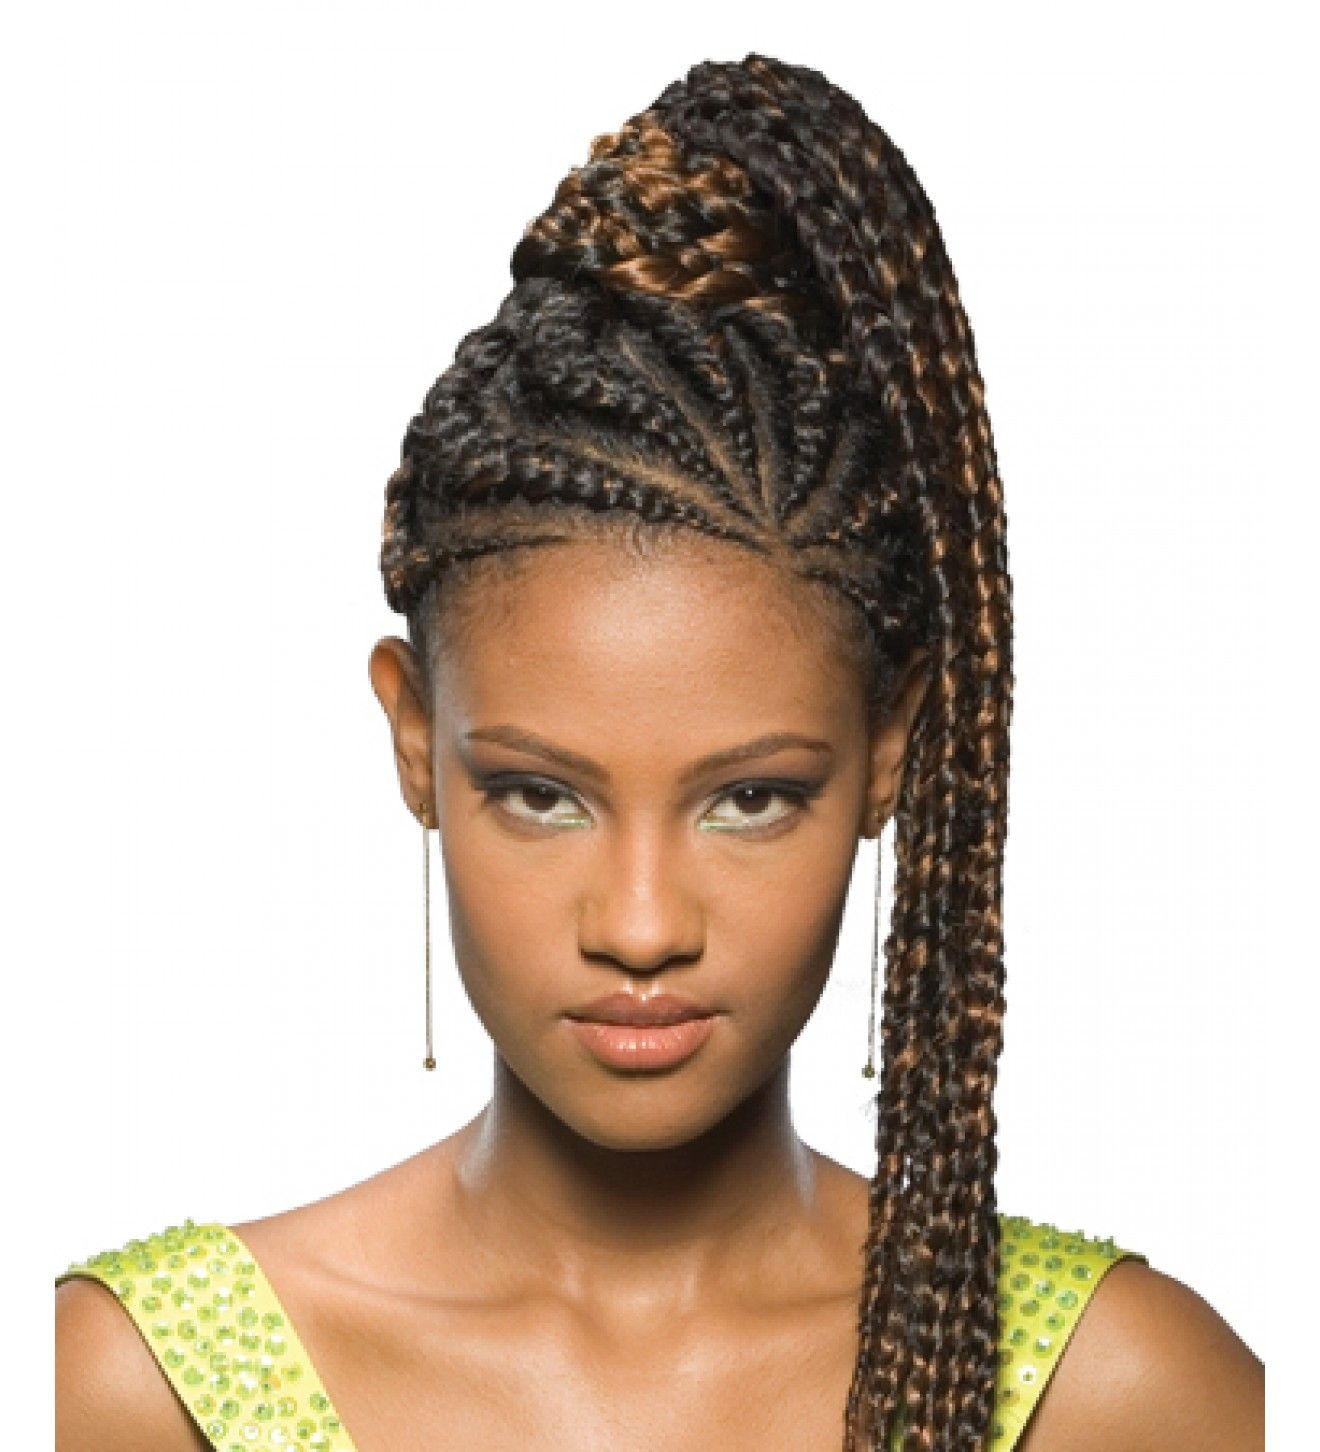 Natural Hairstyles Ponytails Fake Braided Pony Tails For Black Women Freetress Equal